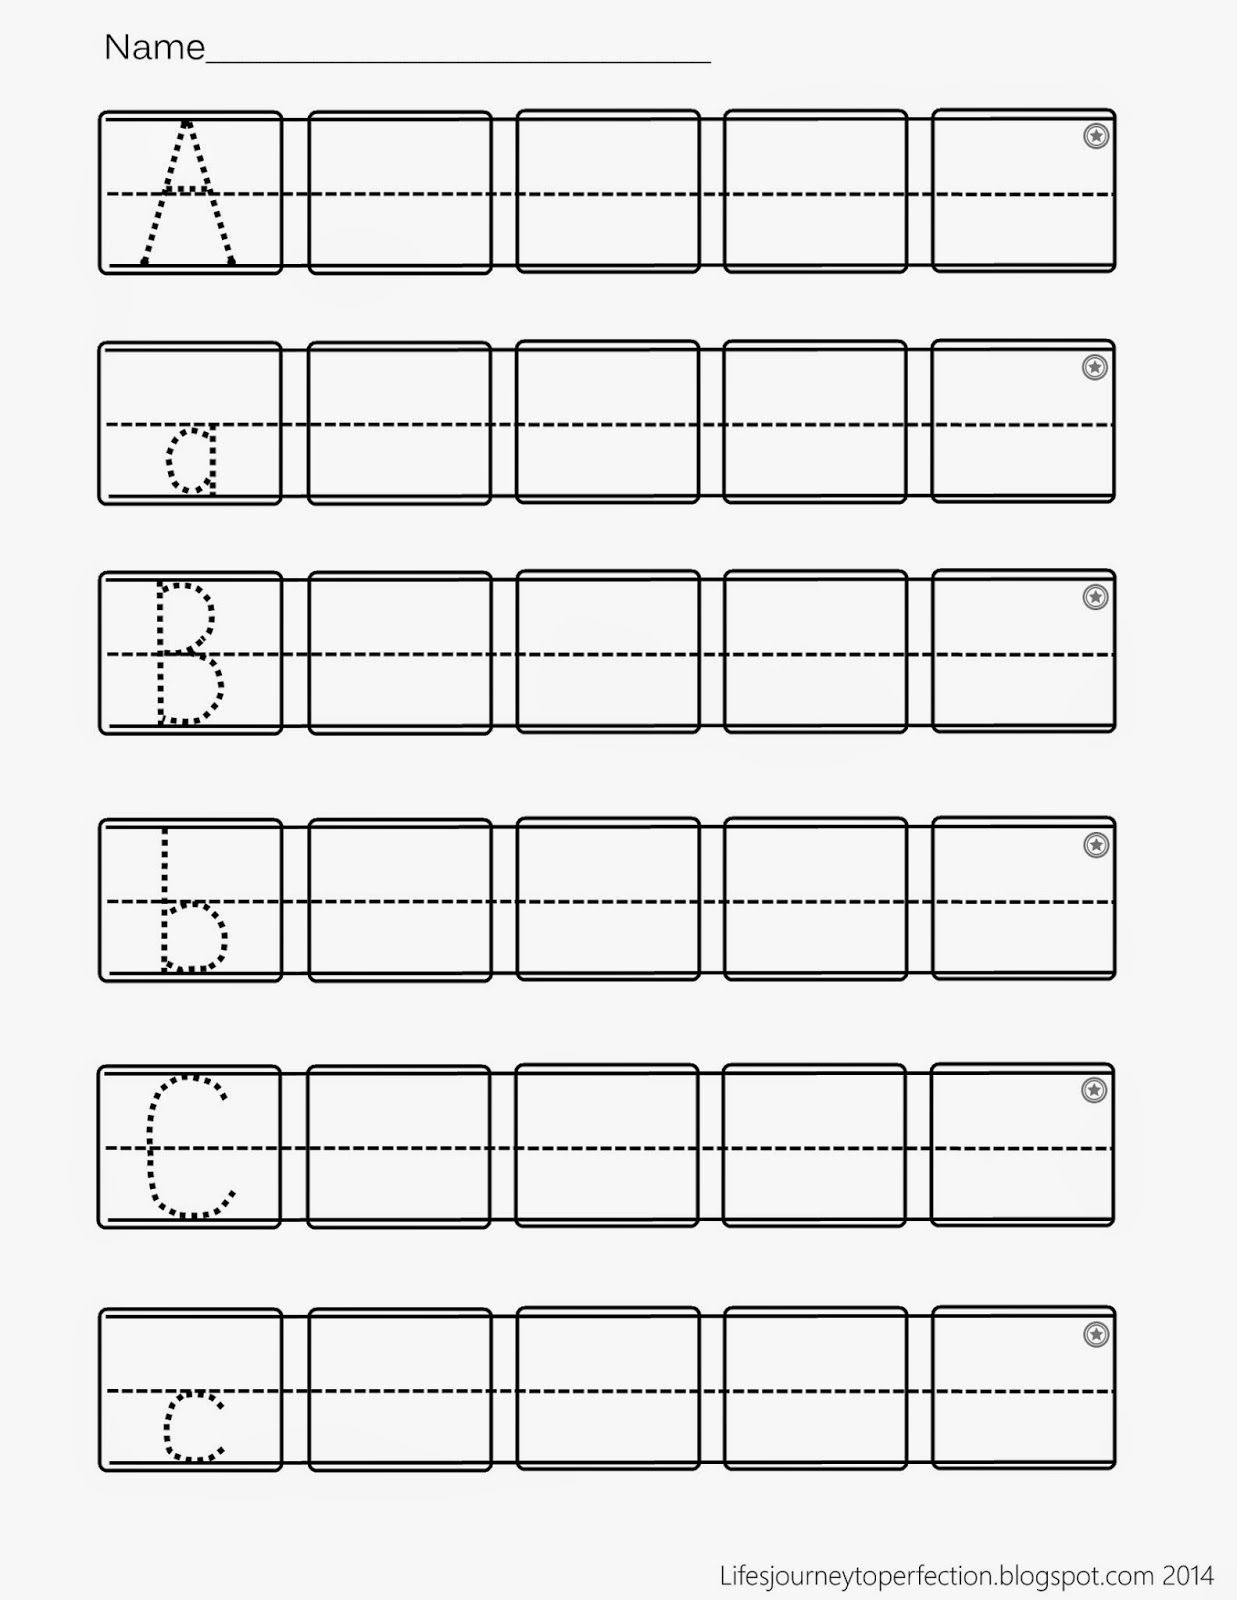 Worksheets Abc Handwriting Worksheets preschool practice abc writing worksheet printables lifes journey to perfection printables